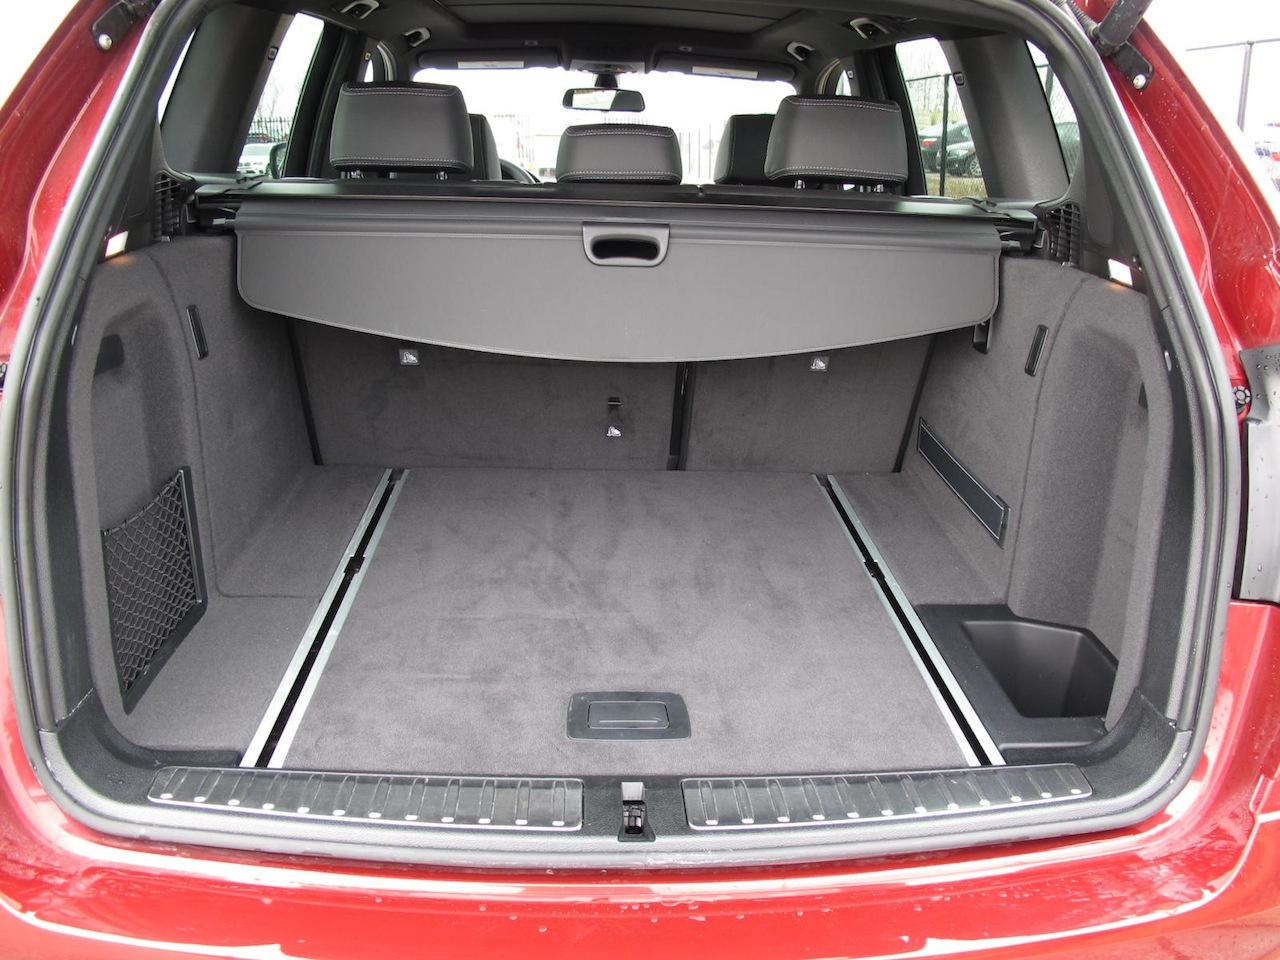 2013 bmw x3 xdrive35i red rear trunk storage space